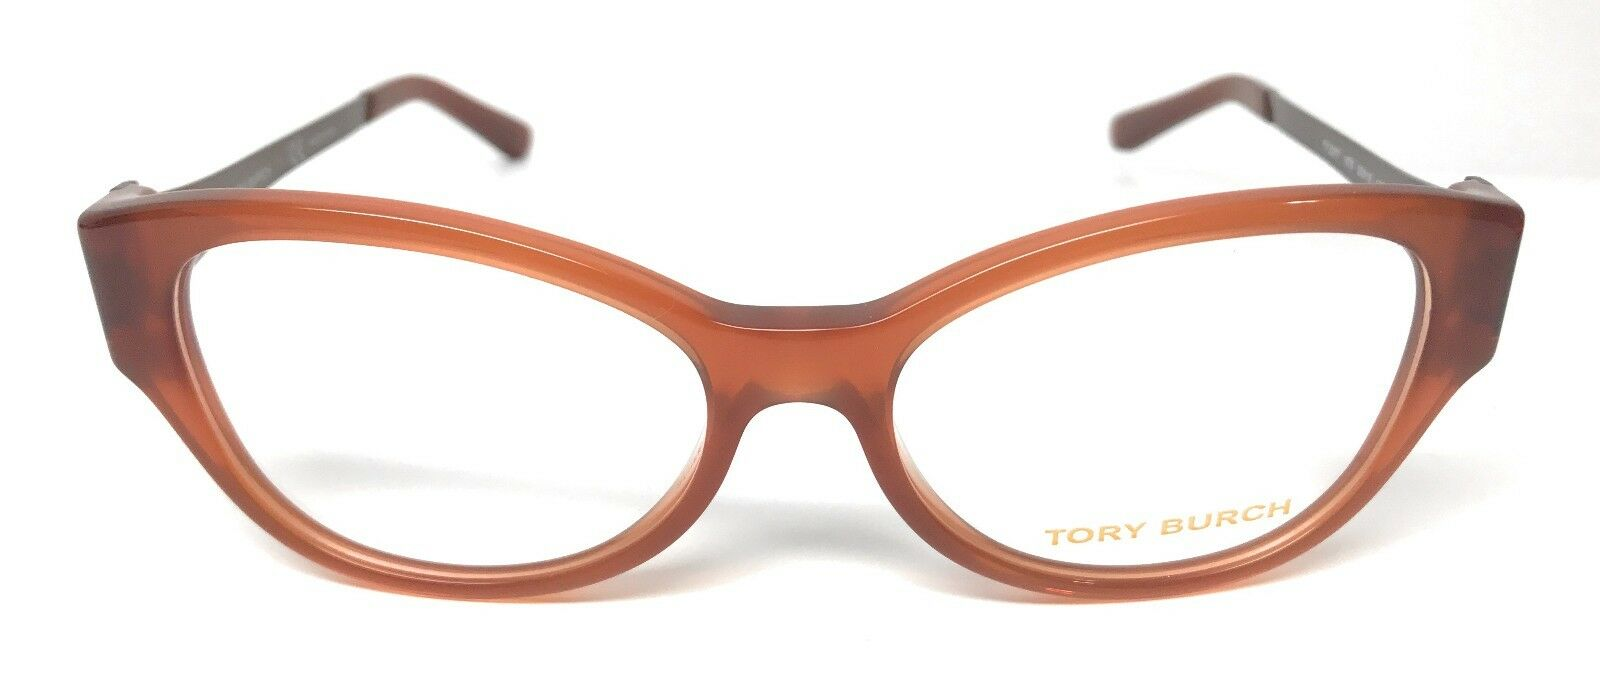 Tory Burch Eyeglasses TY2077 1678 Rx-ABLE